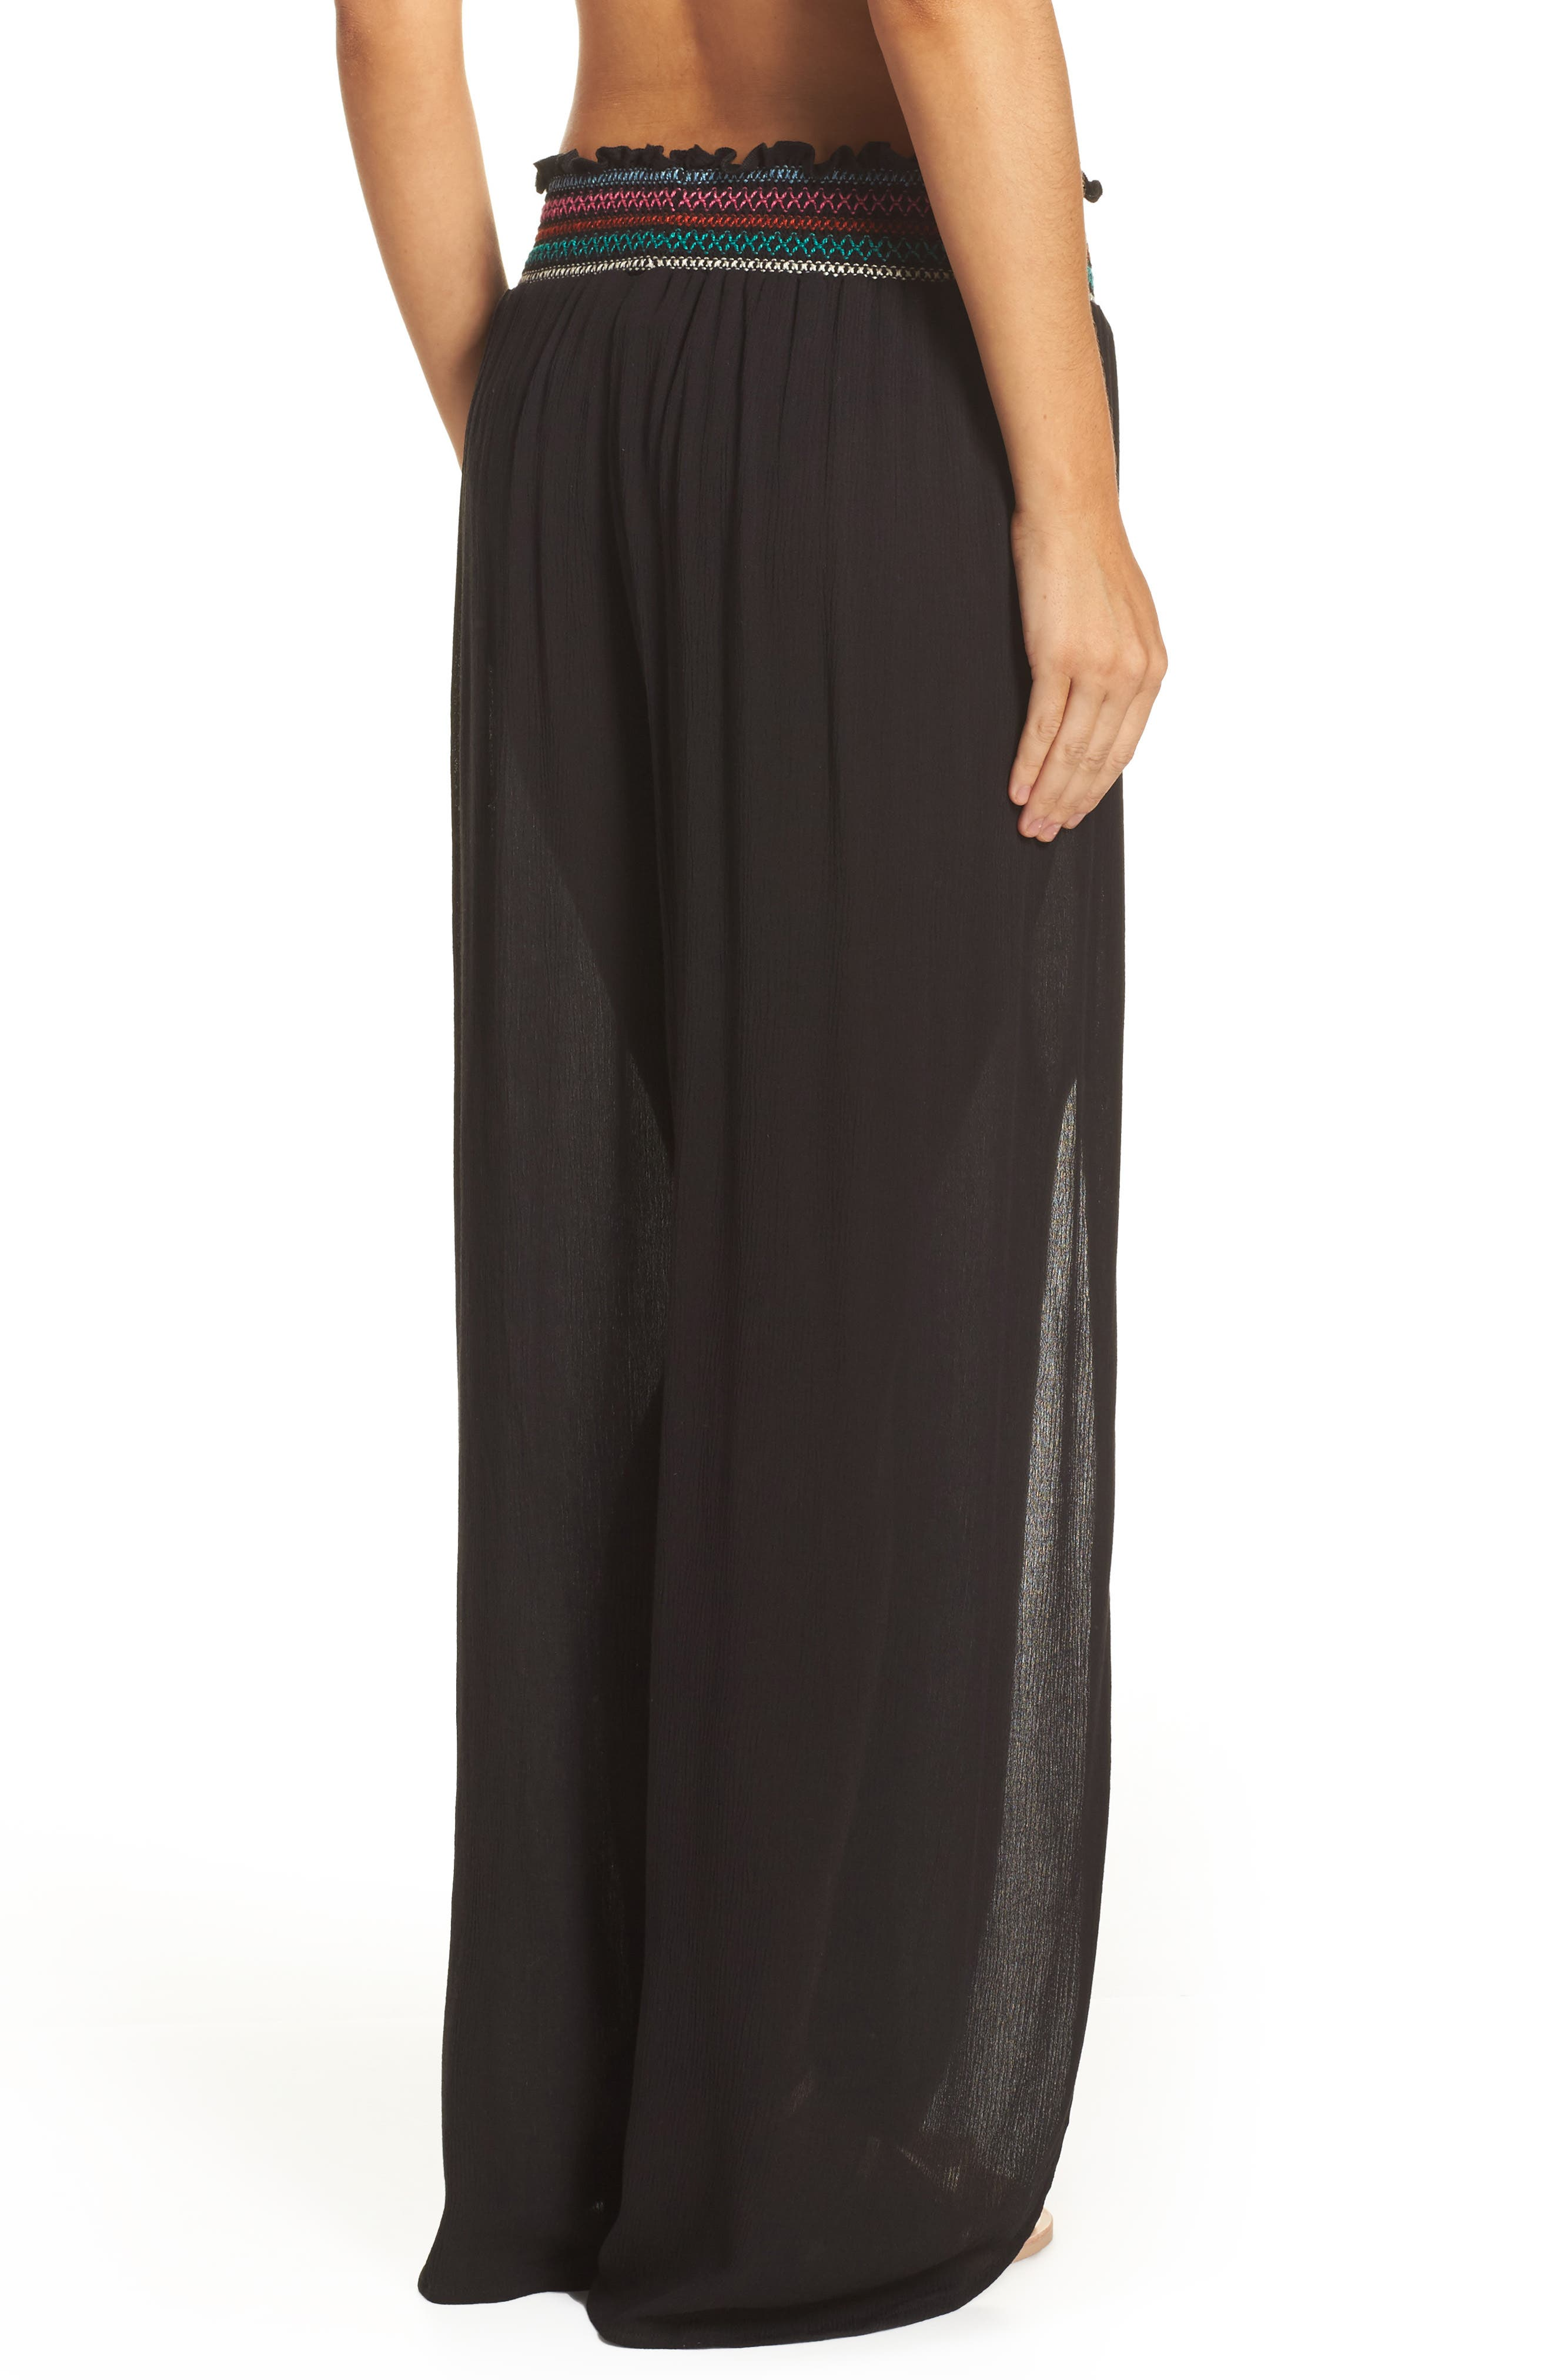 Crystal Cove Cover-Up Pants,                             Alternate thumbnail 2, color,                             Black